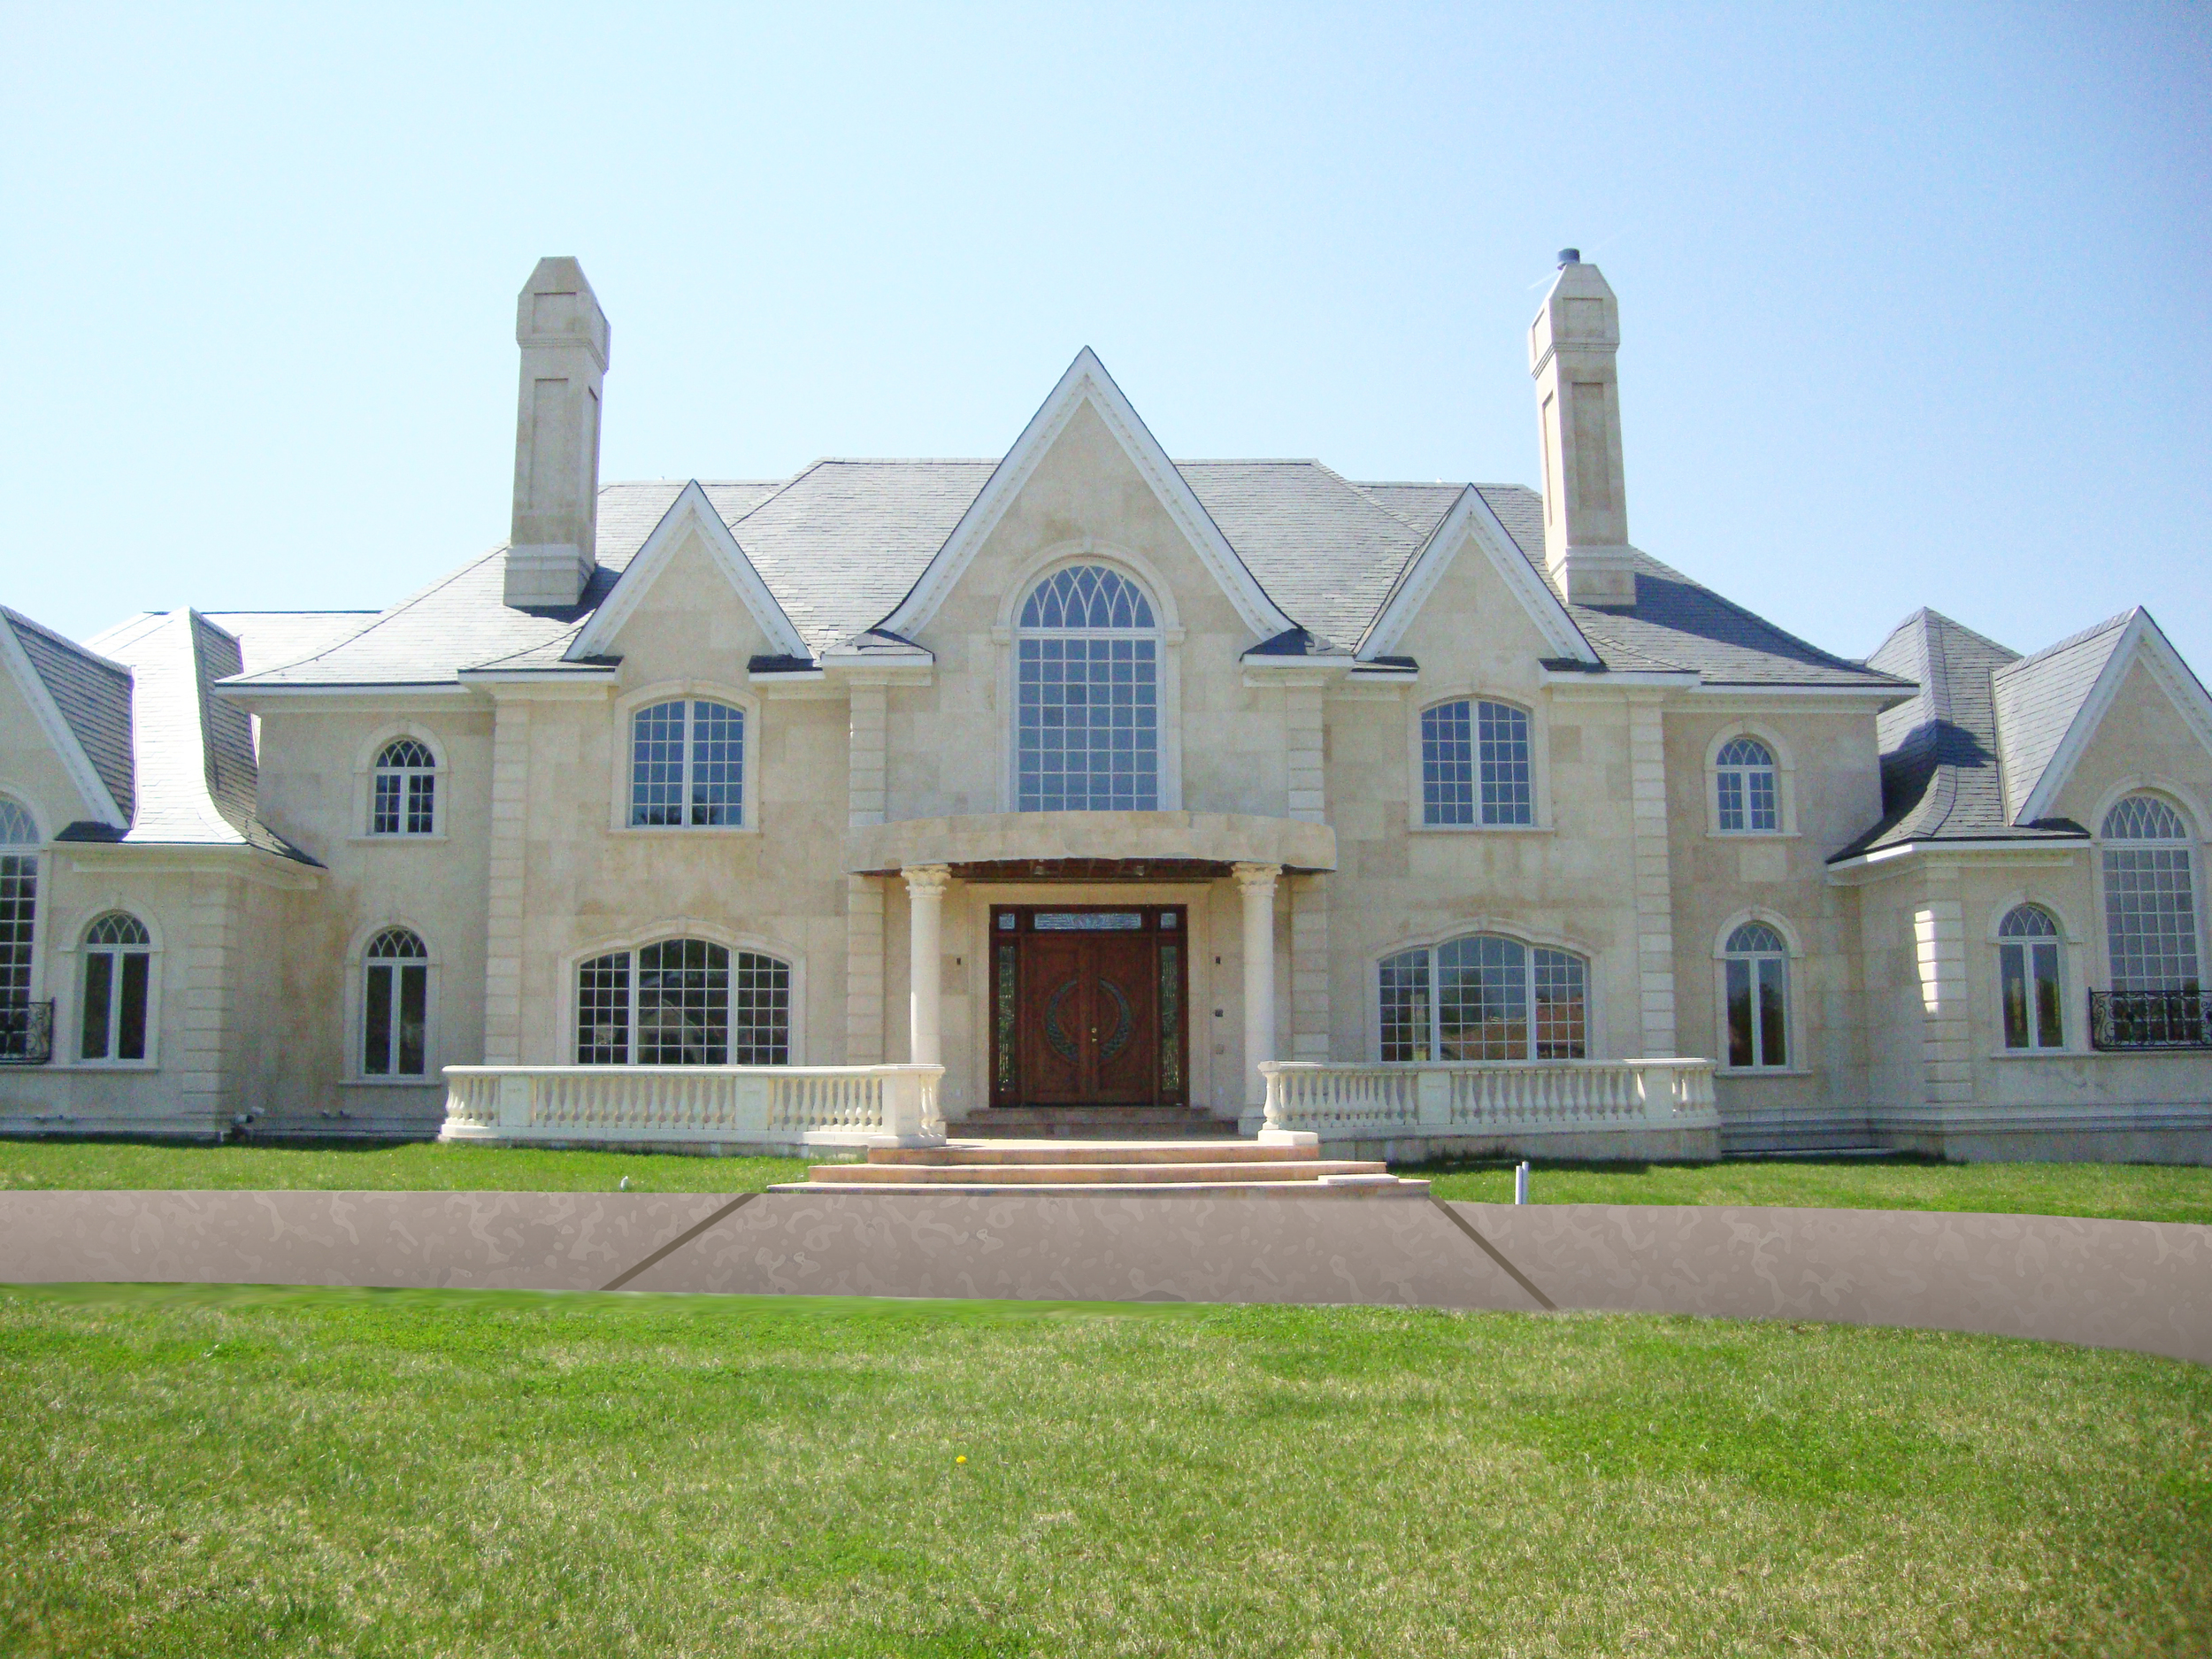 20,000 sq. ft of anchored limestone panels, including window surrounds and accents in Potomac, MD.